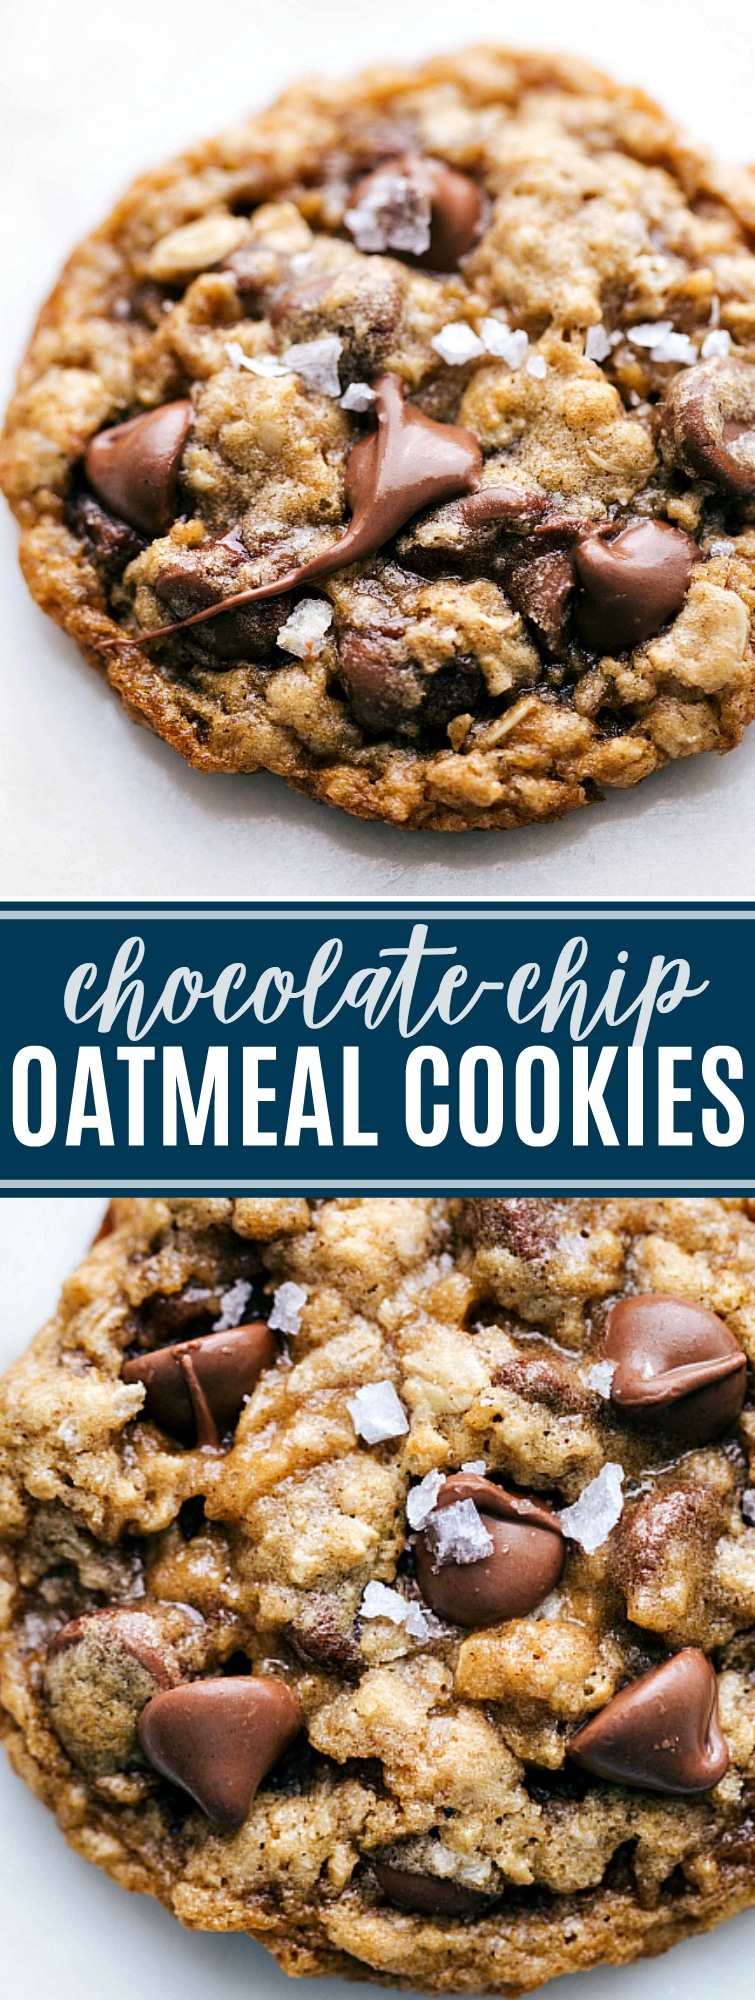 Soft, chewy, buttery, and best of all CHOCOLATEY: these oatmeal chocolate chip cookies are the absolute best! Plus tips to make these perfect everytime! via chelseasmessyapron.com #oatmeal #chocolate #chip #cookies #easy #quick #holiday #bake #baking #treat #dessert #cookie #exchange